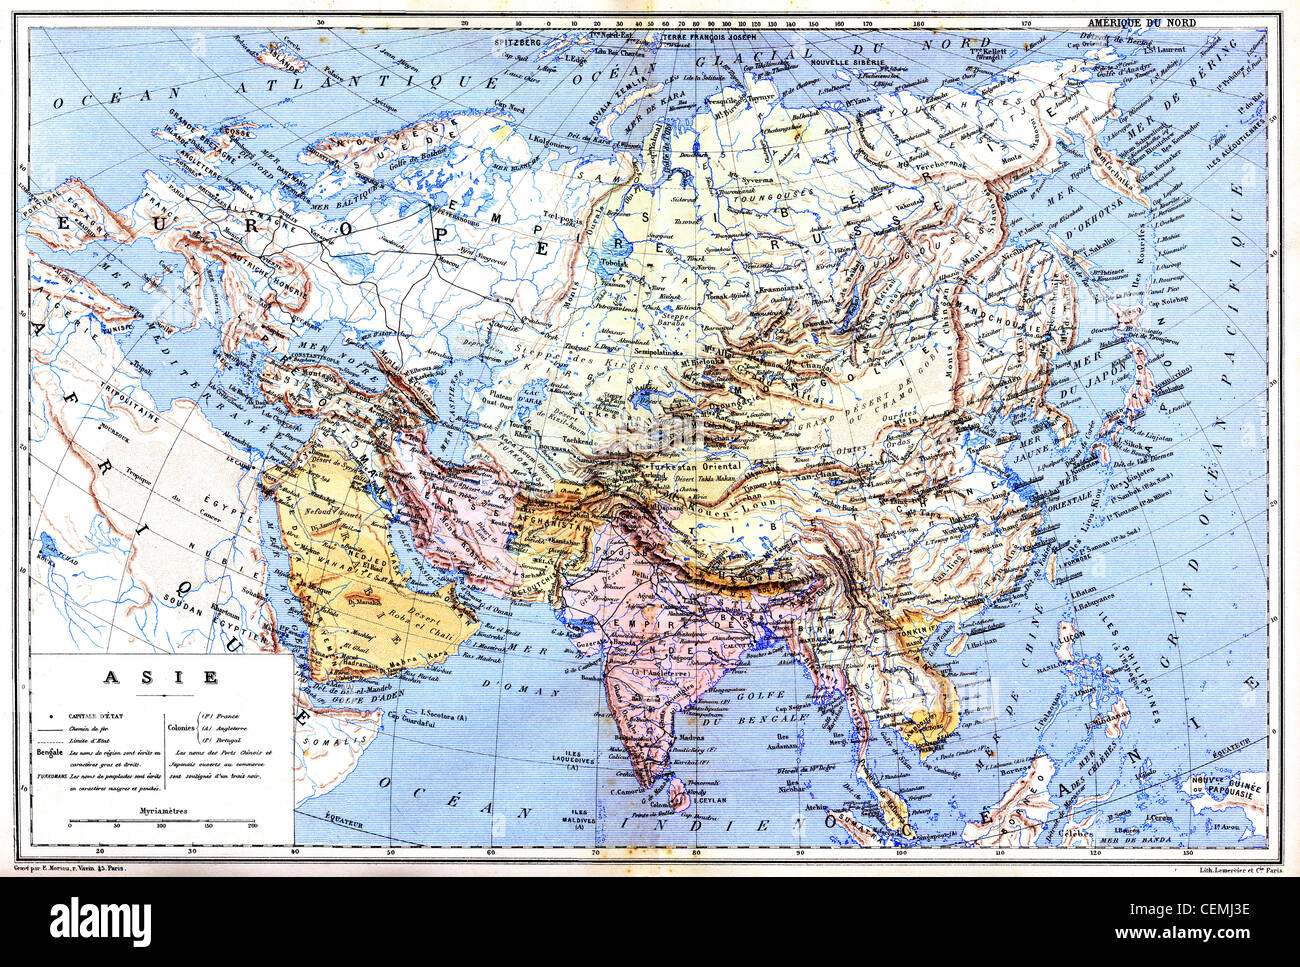 Map Of Asia Cities.The Map Of Asia With Names Of Cities And Countries On Map Stock